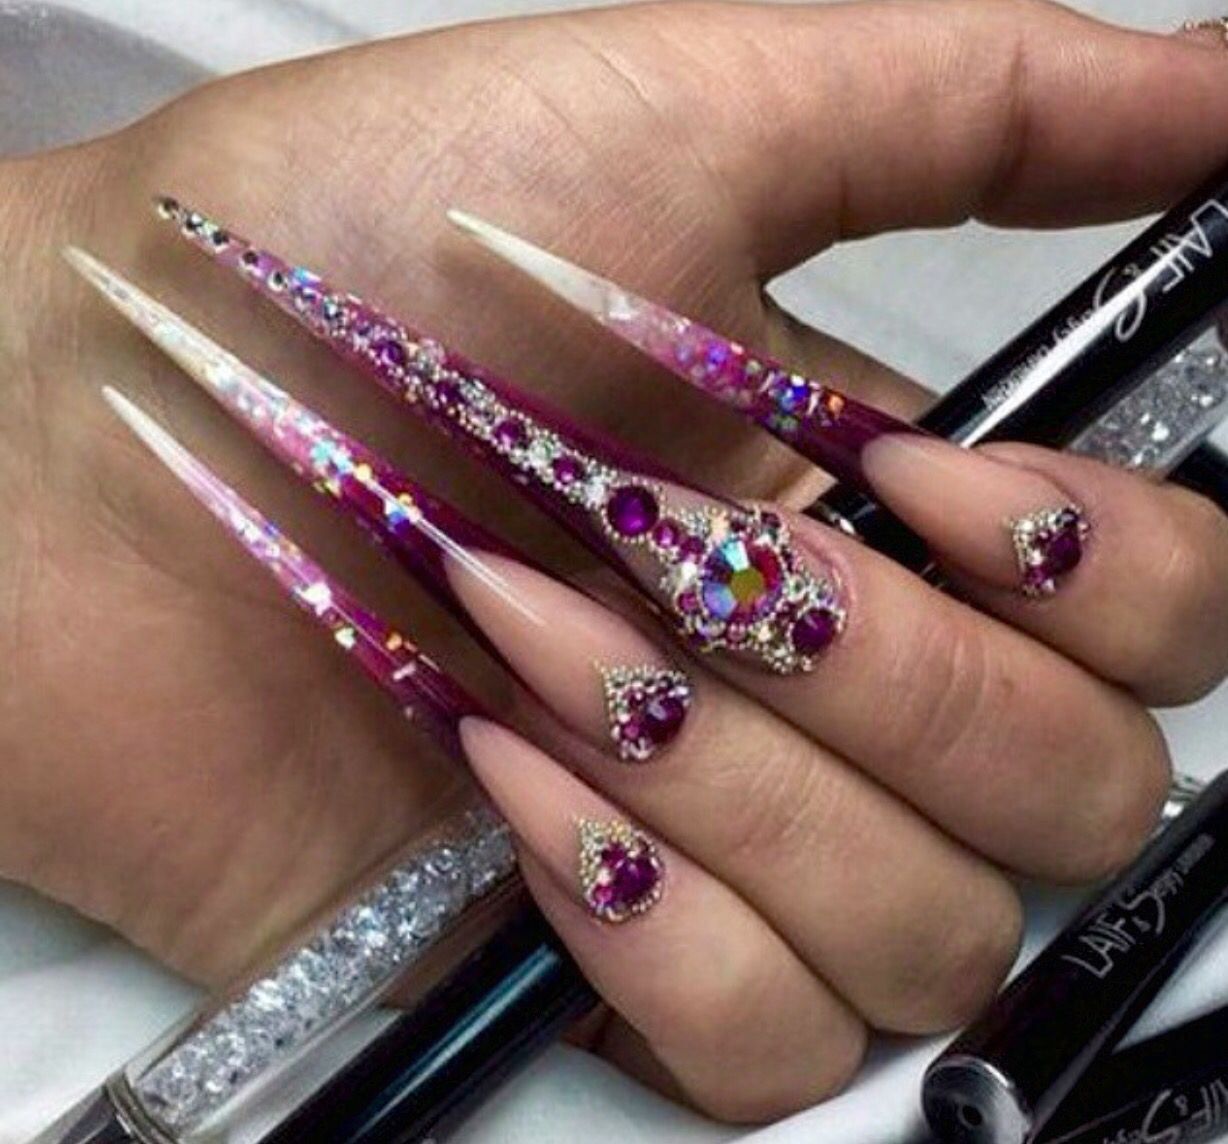 How are stiletto nails done? - Quora